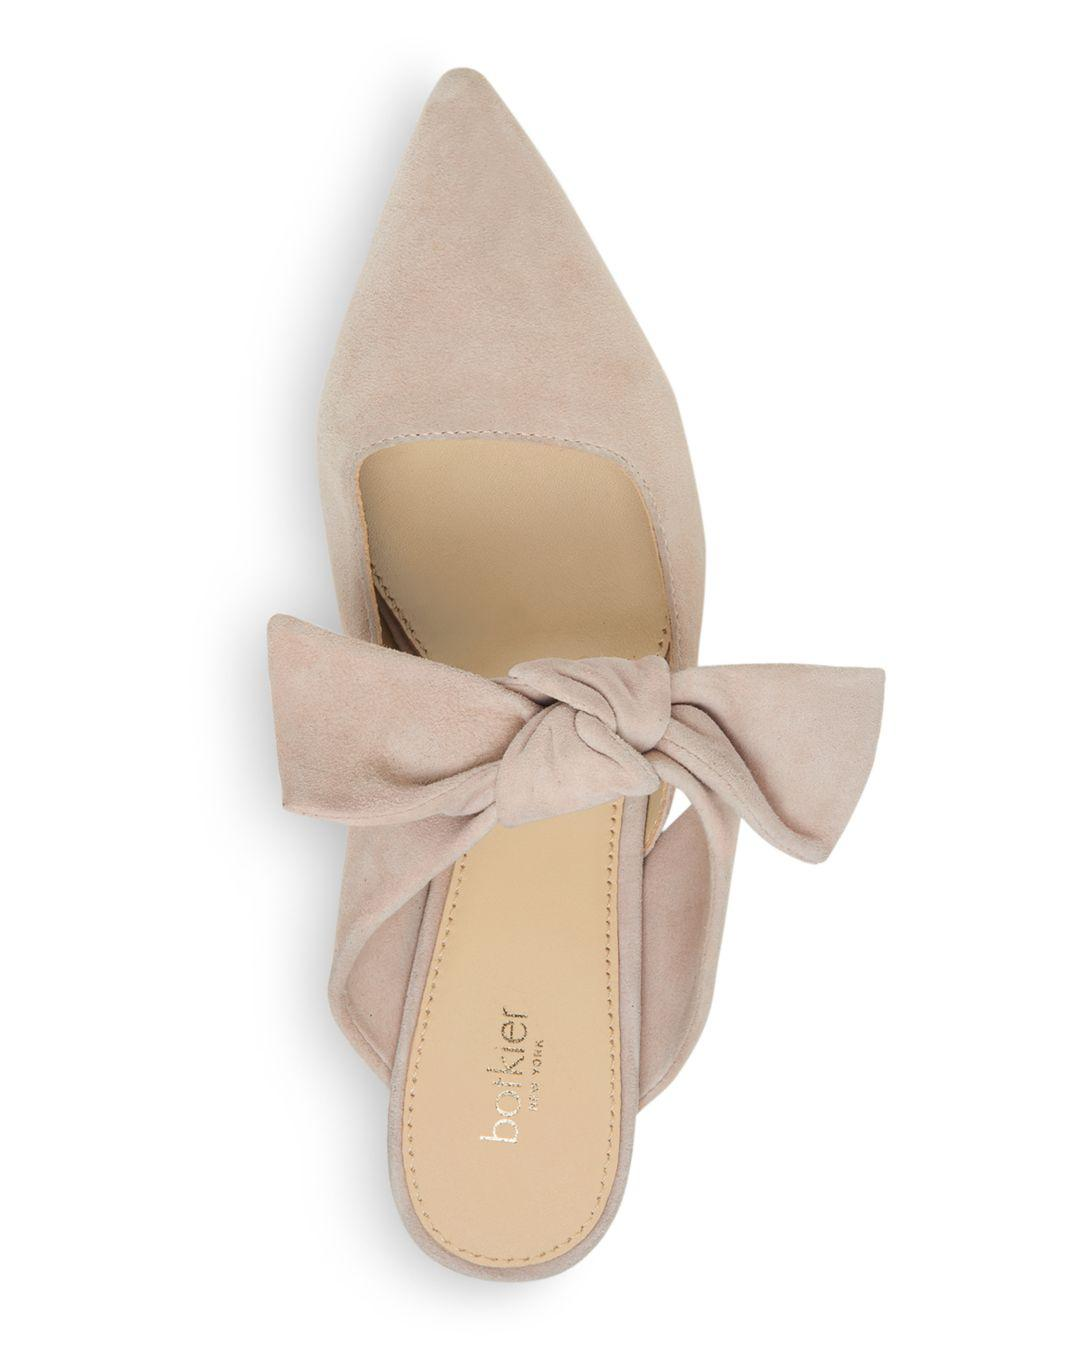 a43b00c56d Botkier Women's Pina Bow-accented Suede Kitten Heel Mules - Lyst